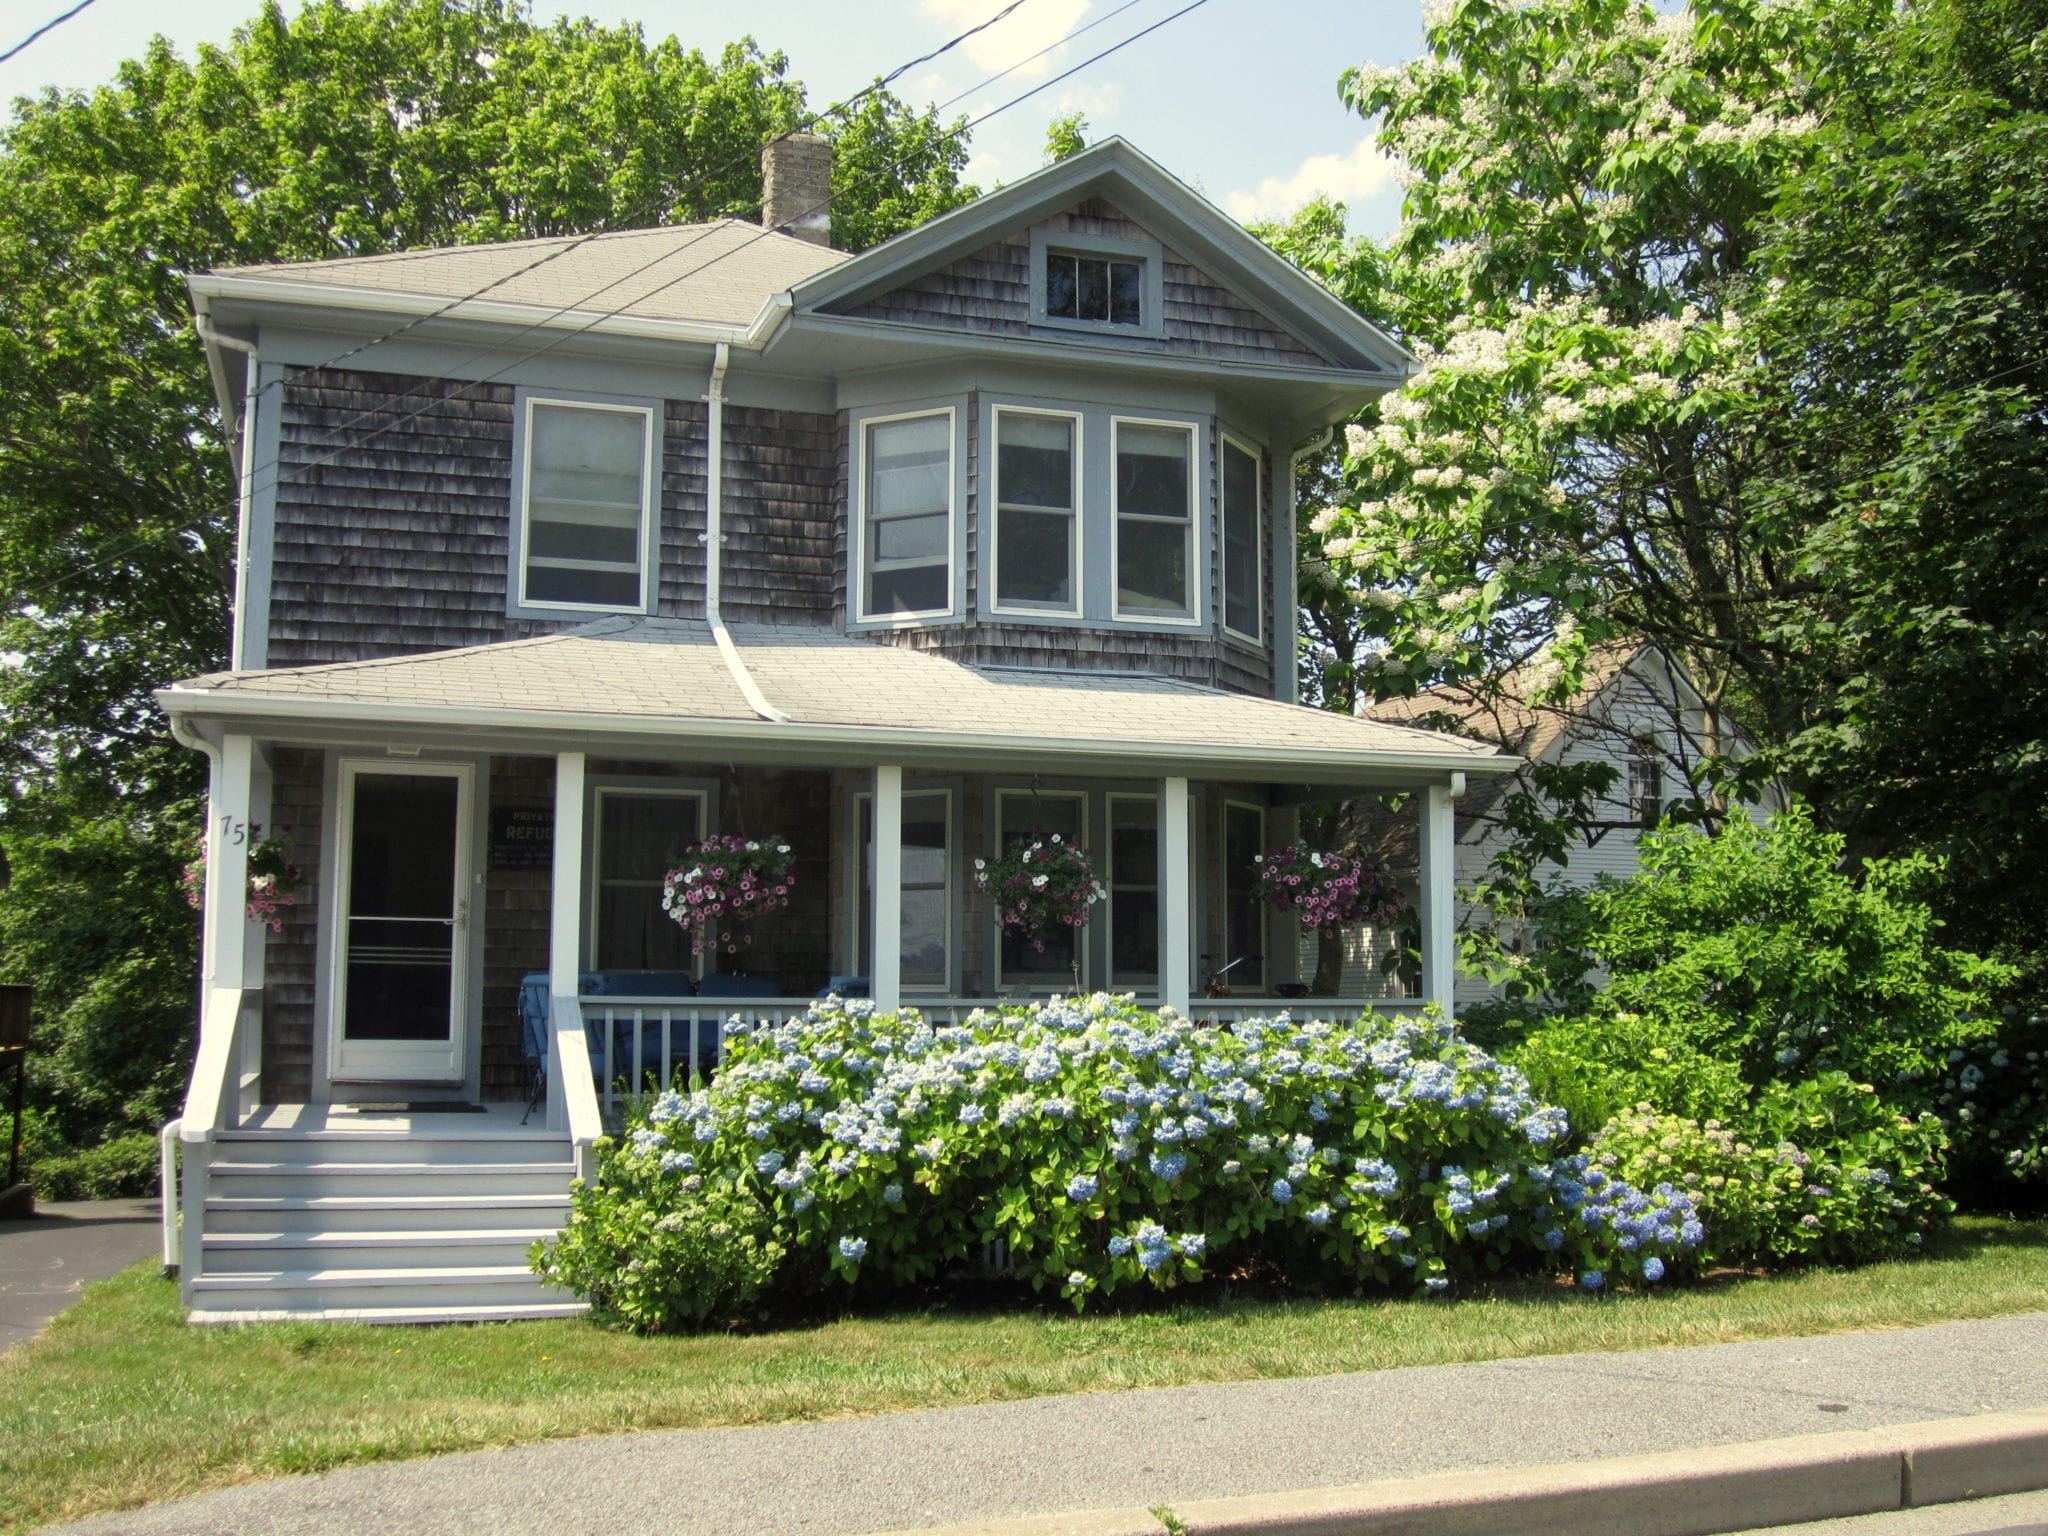 Exterior: Photo Essay: Cape Cod Houses